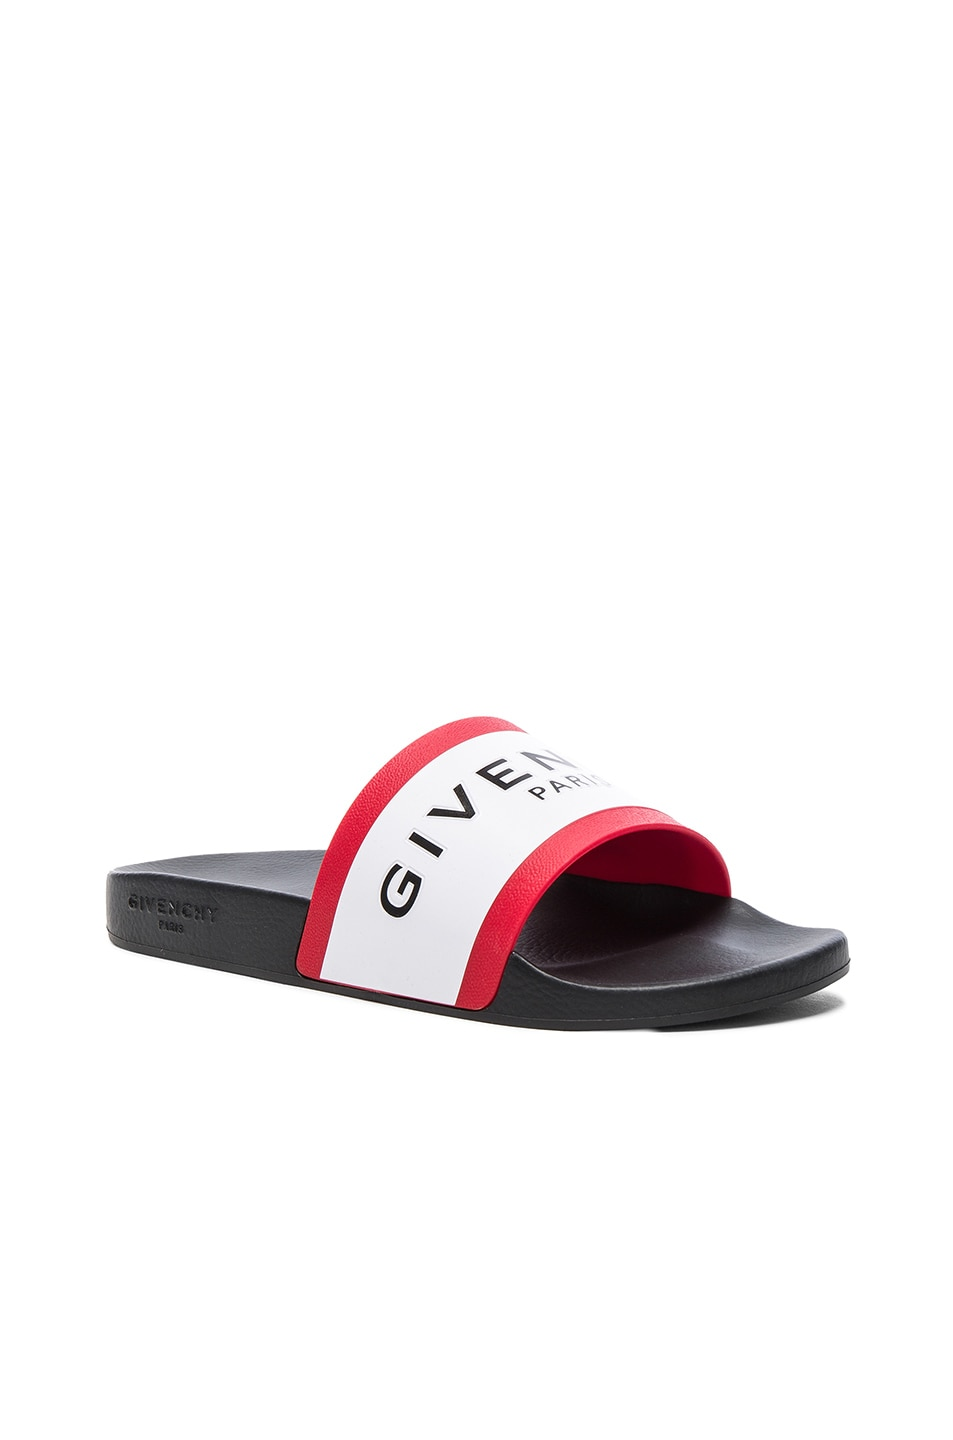 Image 2 of Givenchy Slide Sandals in Black, White & Red